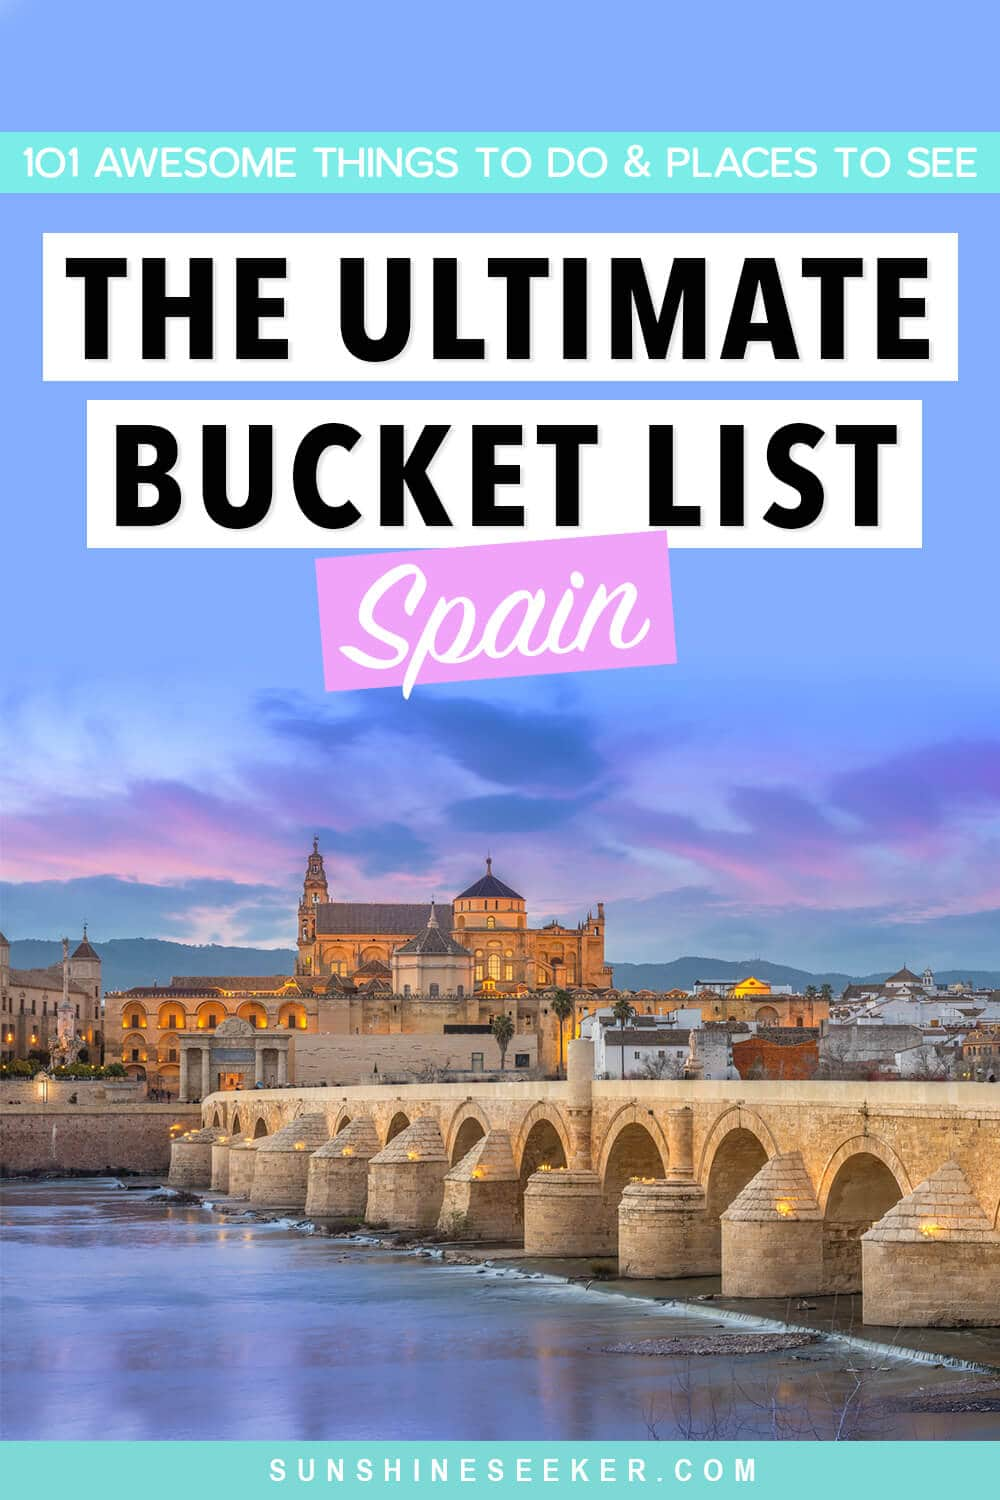 The Ultimate Spain Bucket List - From Cordoba to Barcelona and Murcia to the Cíes Islands. Here are 101 of the top things to do and places to see in Spain